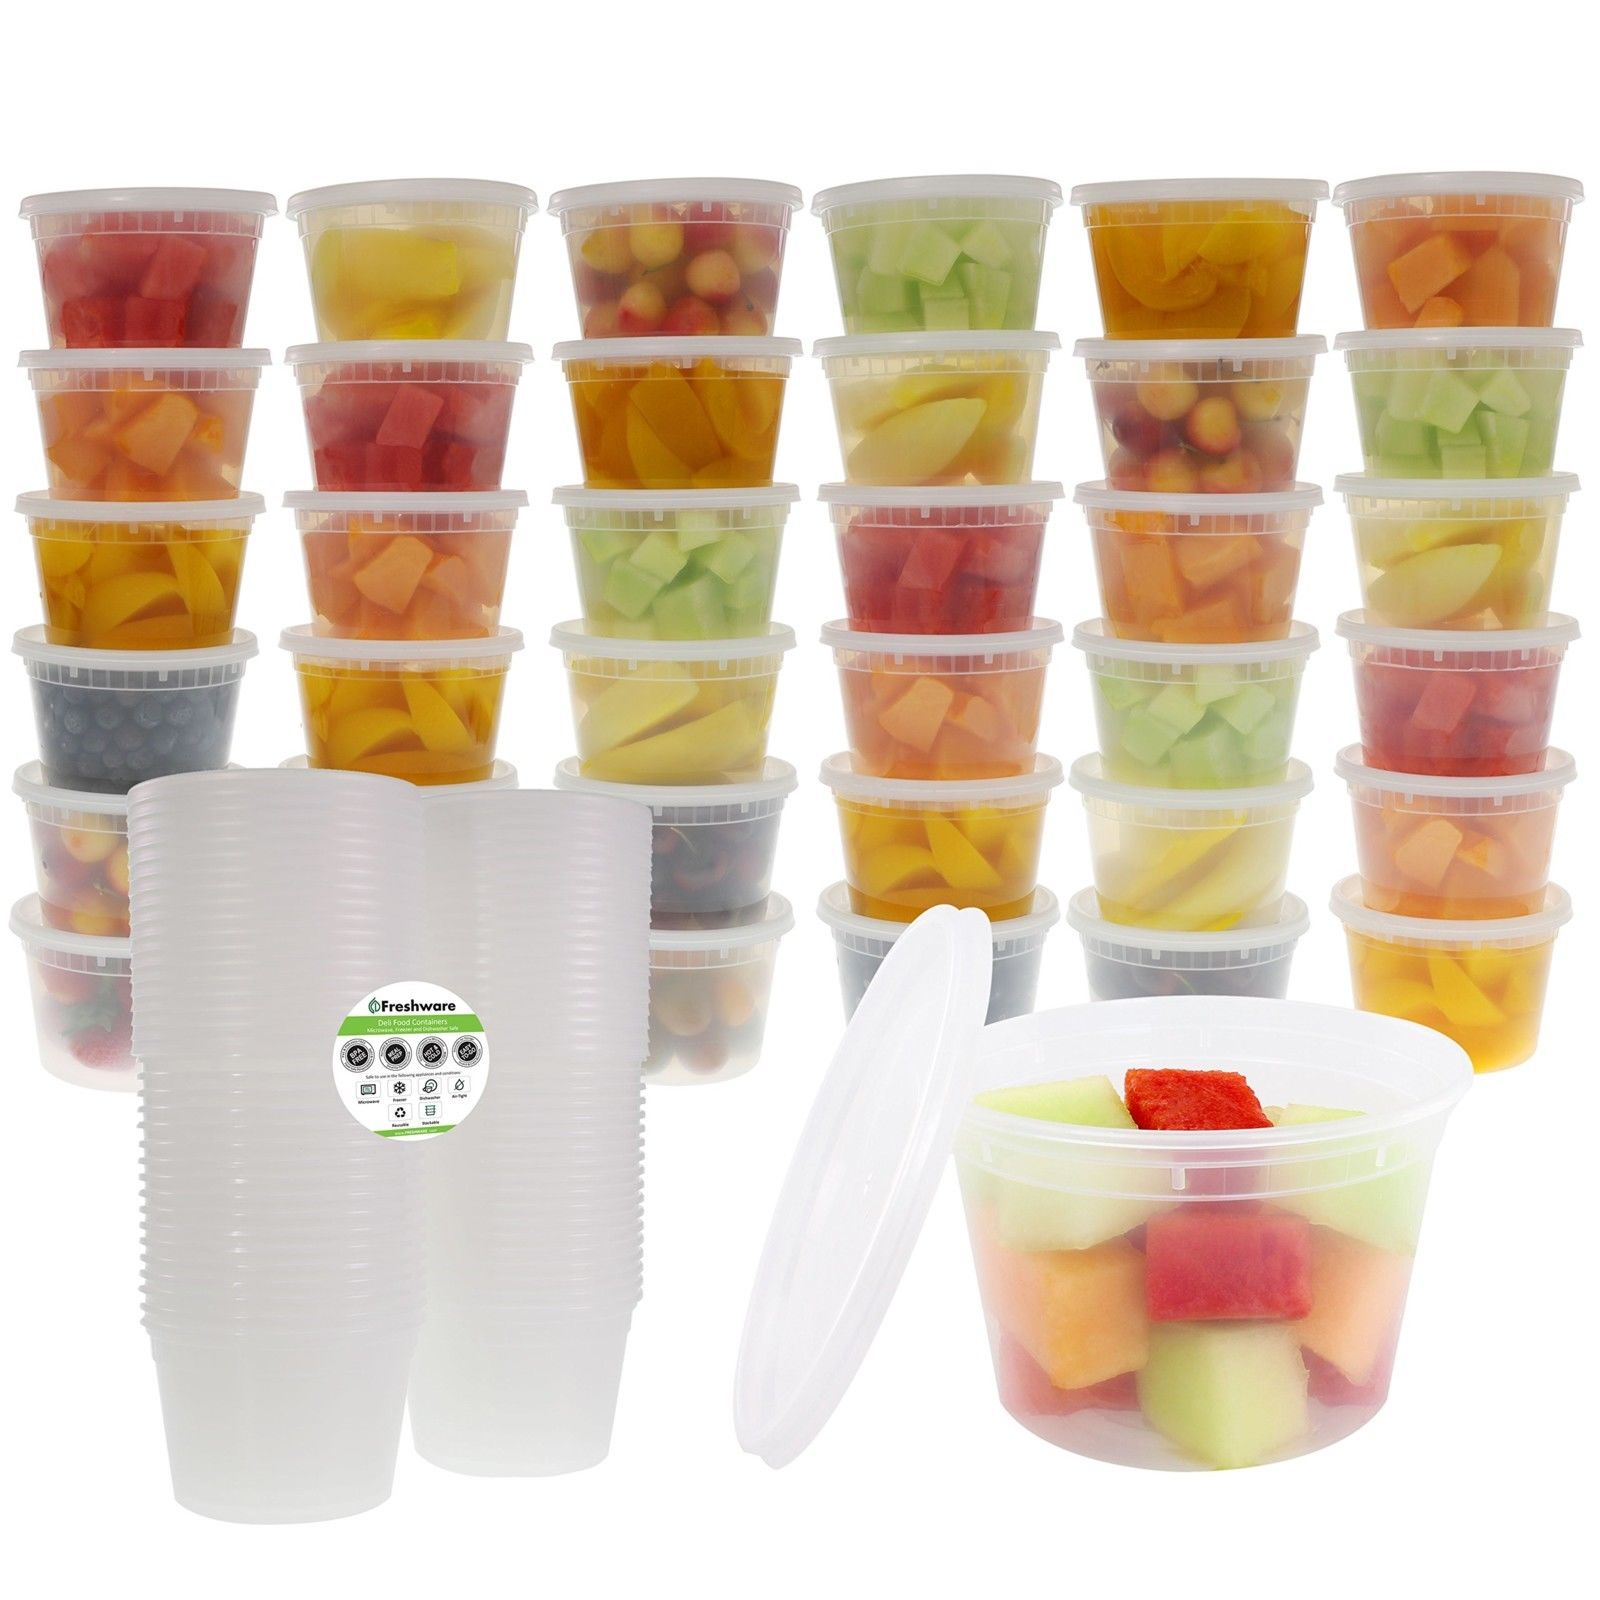 Freshware 36-Pack 16 oz Plastic Food Storage Containers with Airtight Lids 1